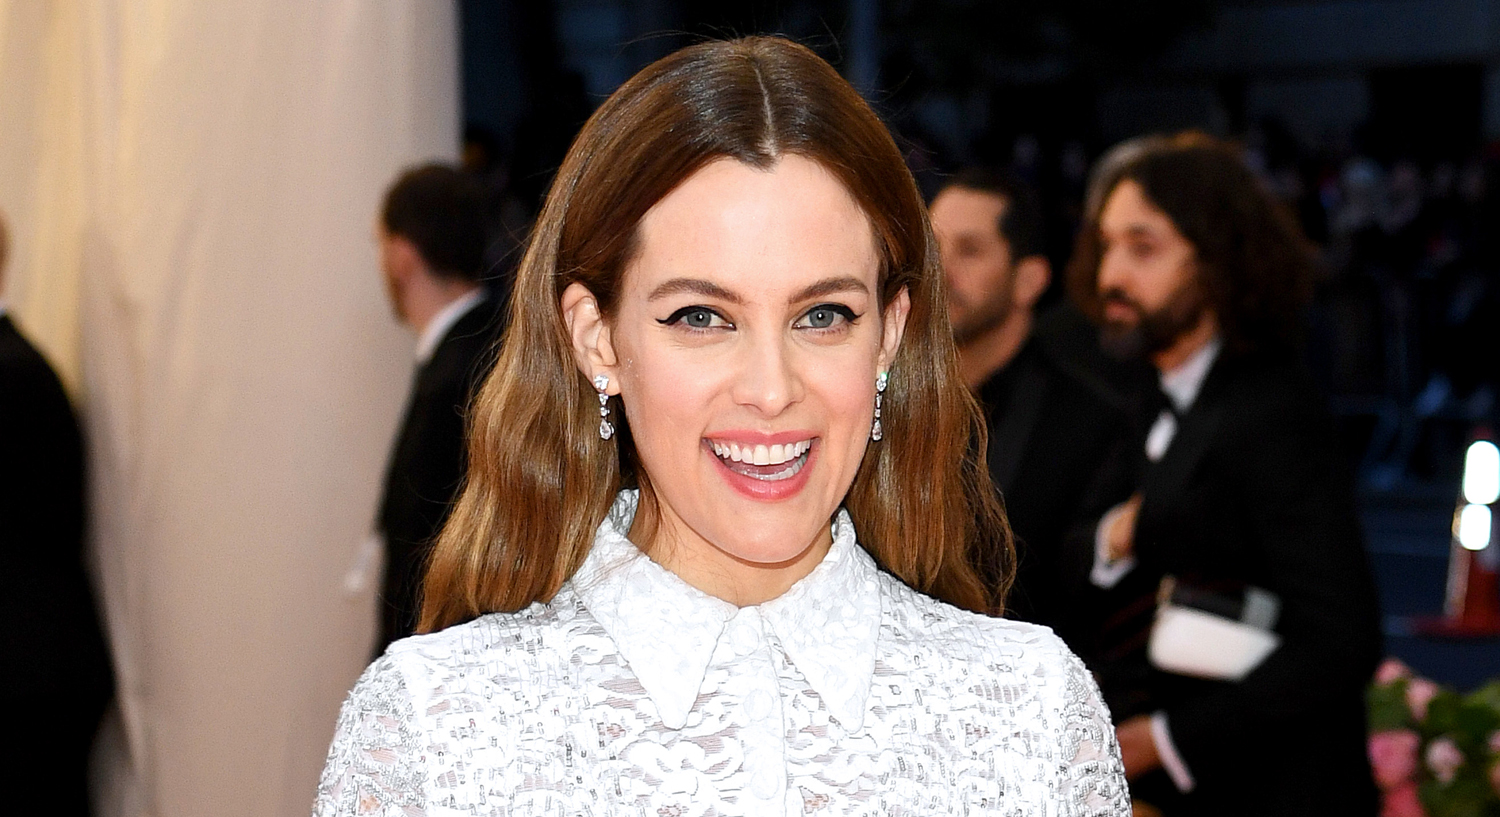 Riley Keough to Star in Amazon Series 'Daisy Jones & The Six'